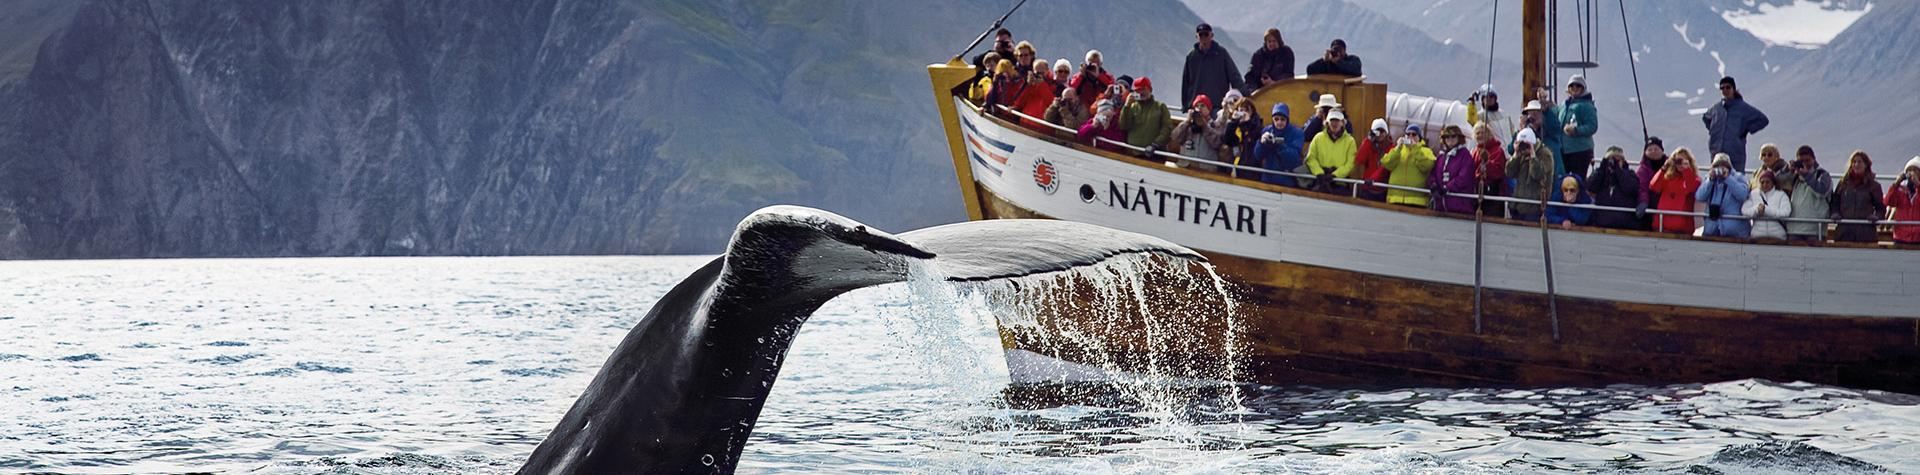 Iceland holiday deals: Whale watching, Húsavik, north Iceland.